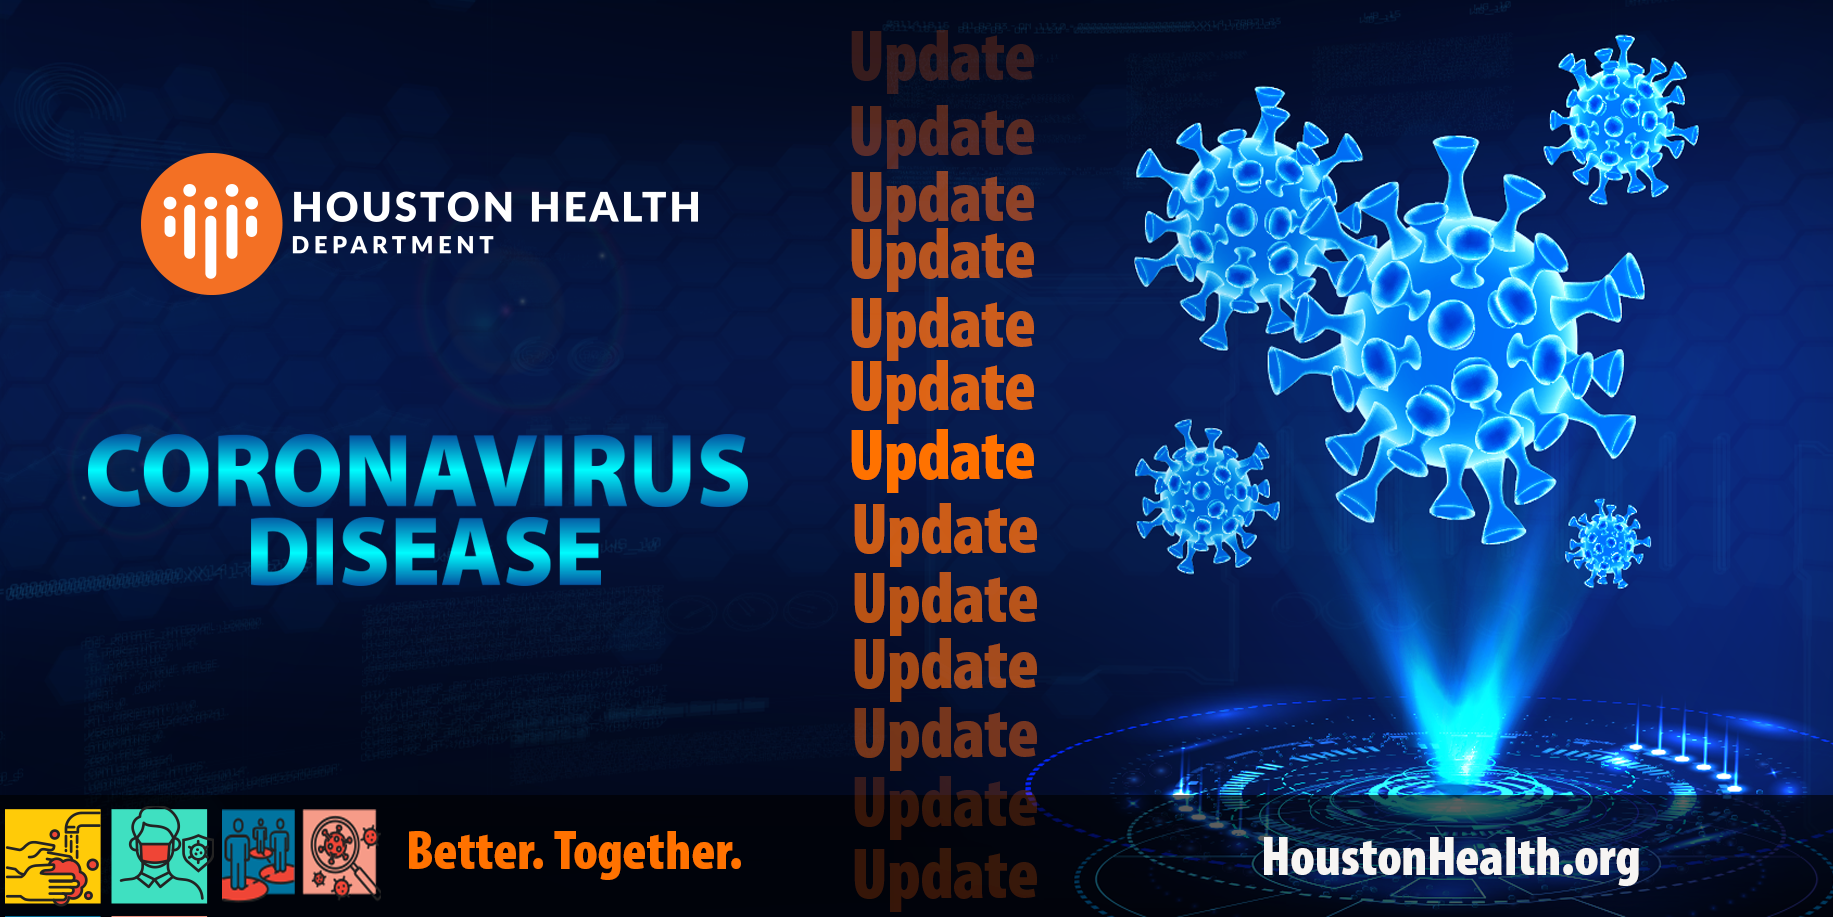 """Image reading """"Coronavirus Disease Update"""" with icon of virus as it appears under a microscope."""